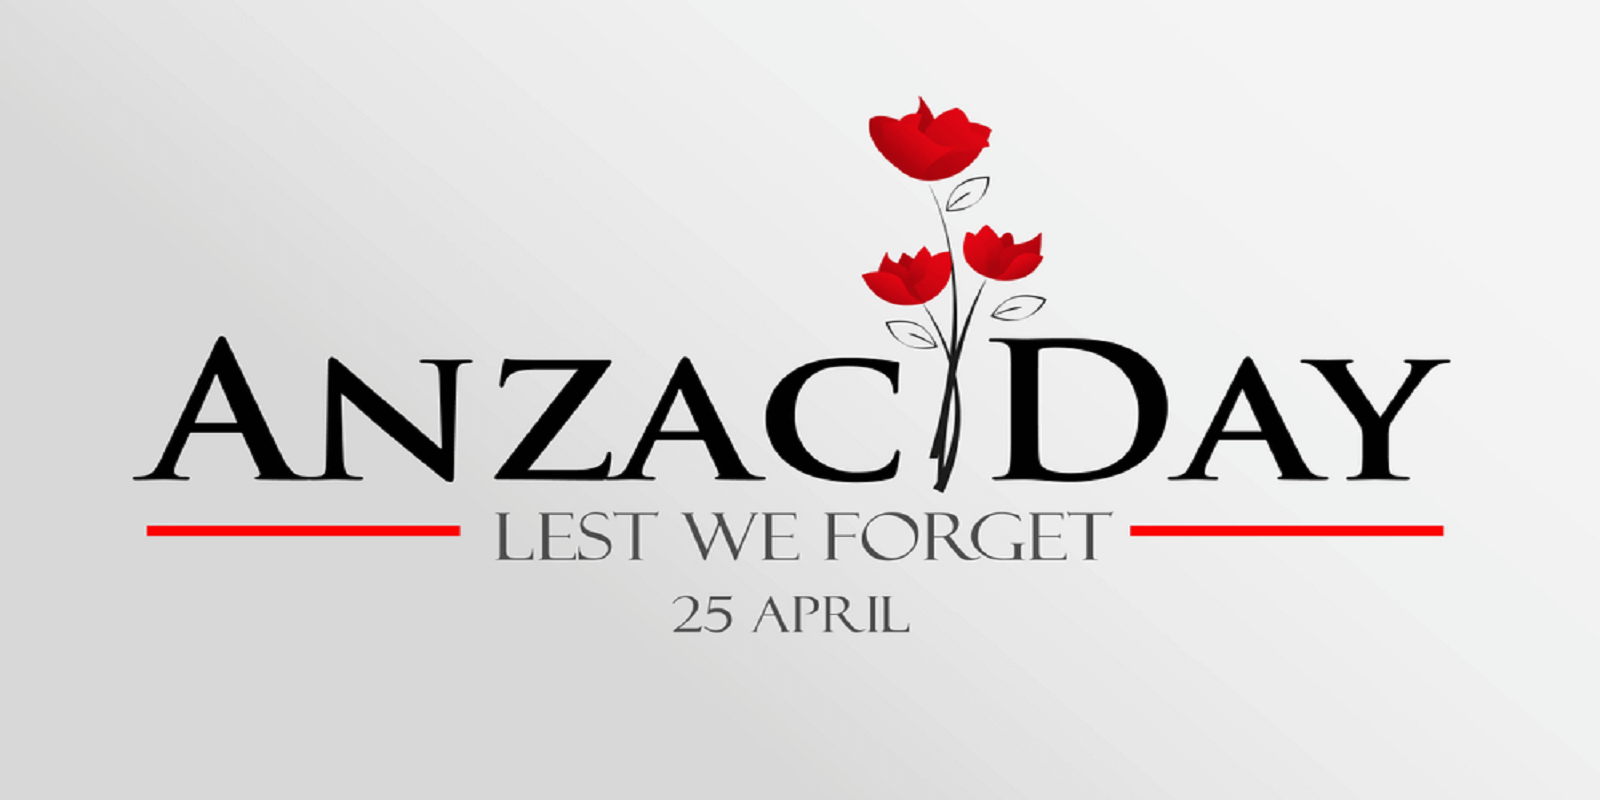 Anzac day images lest we forget